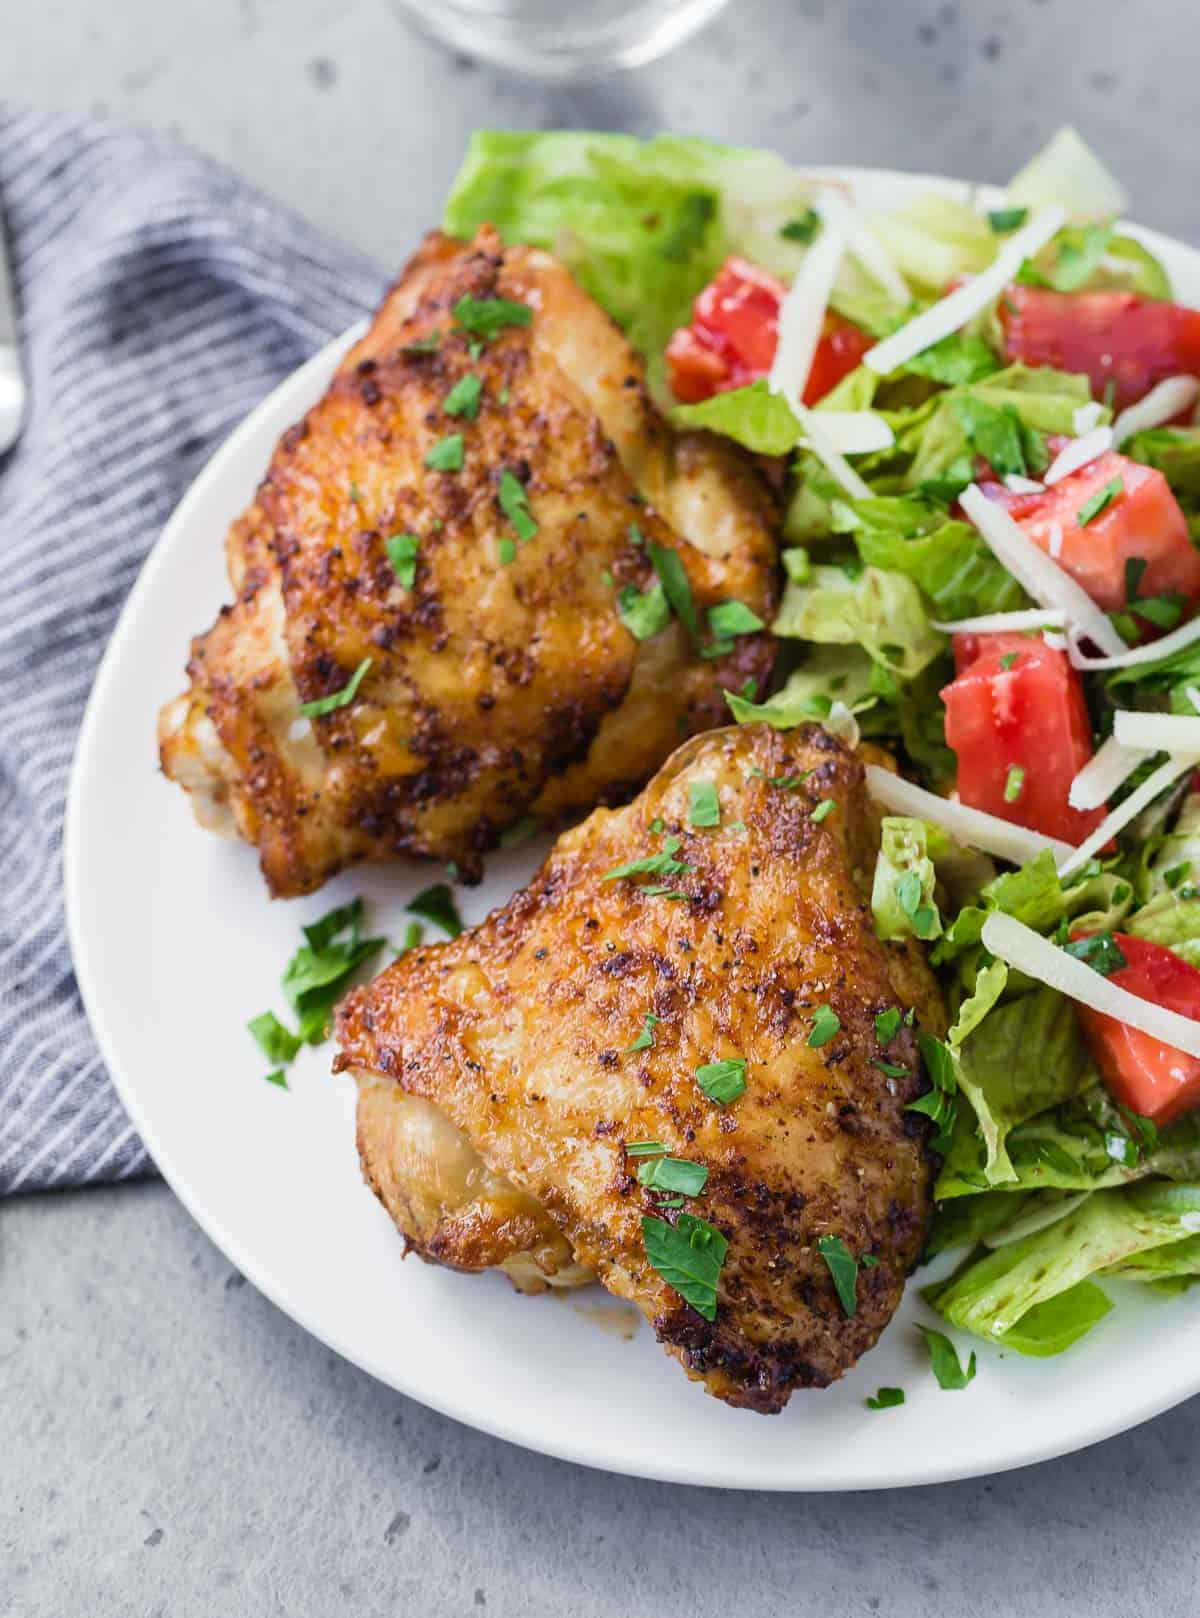 Overhead view of two chicken thighs on a plate with a tossed salad.